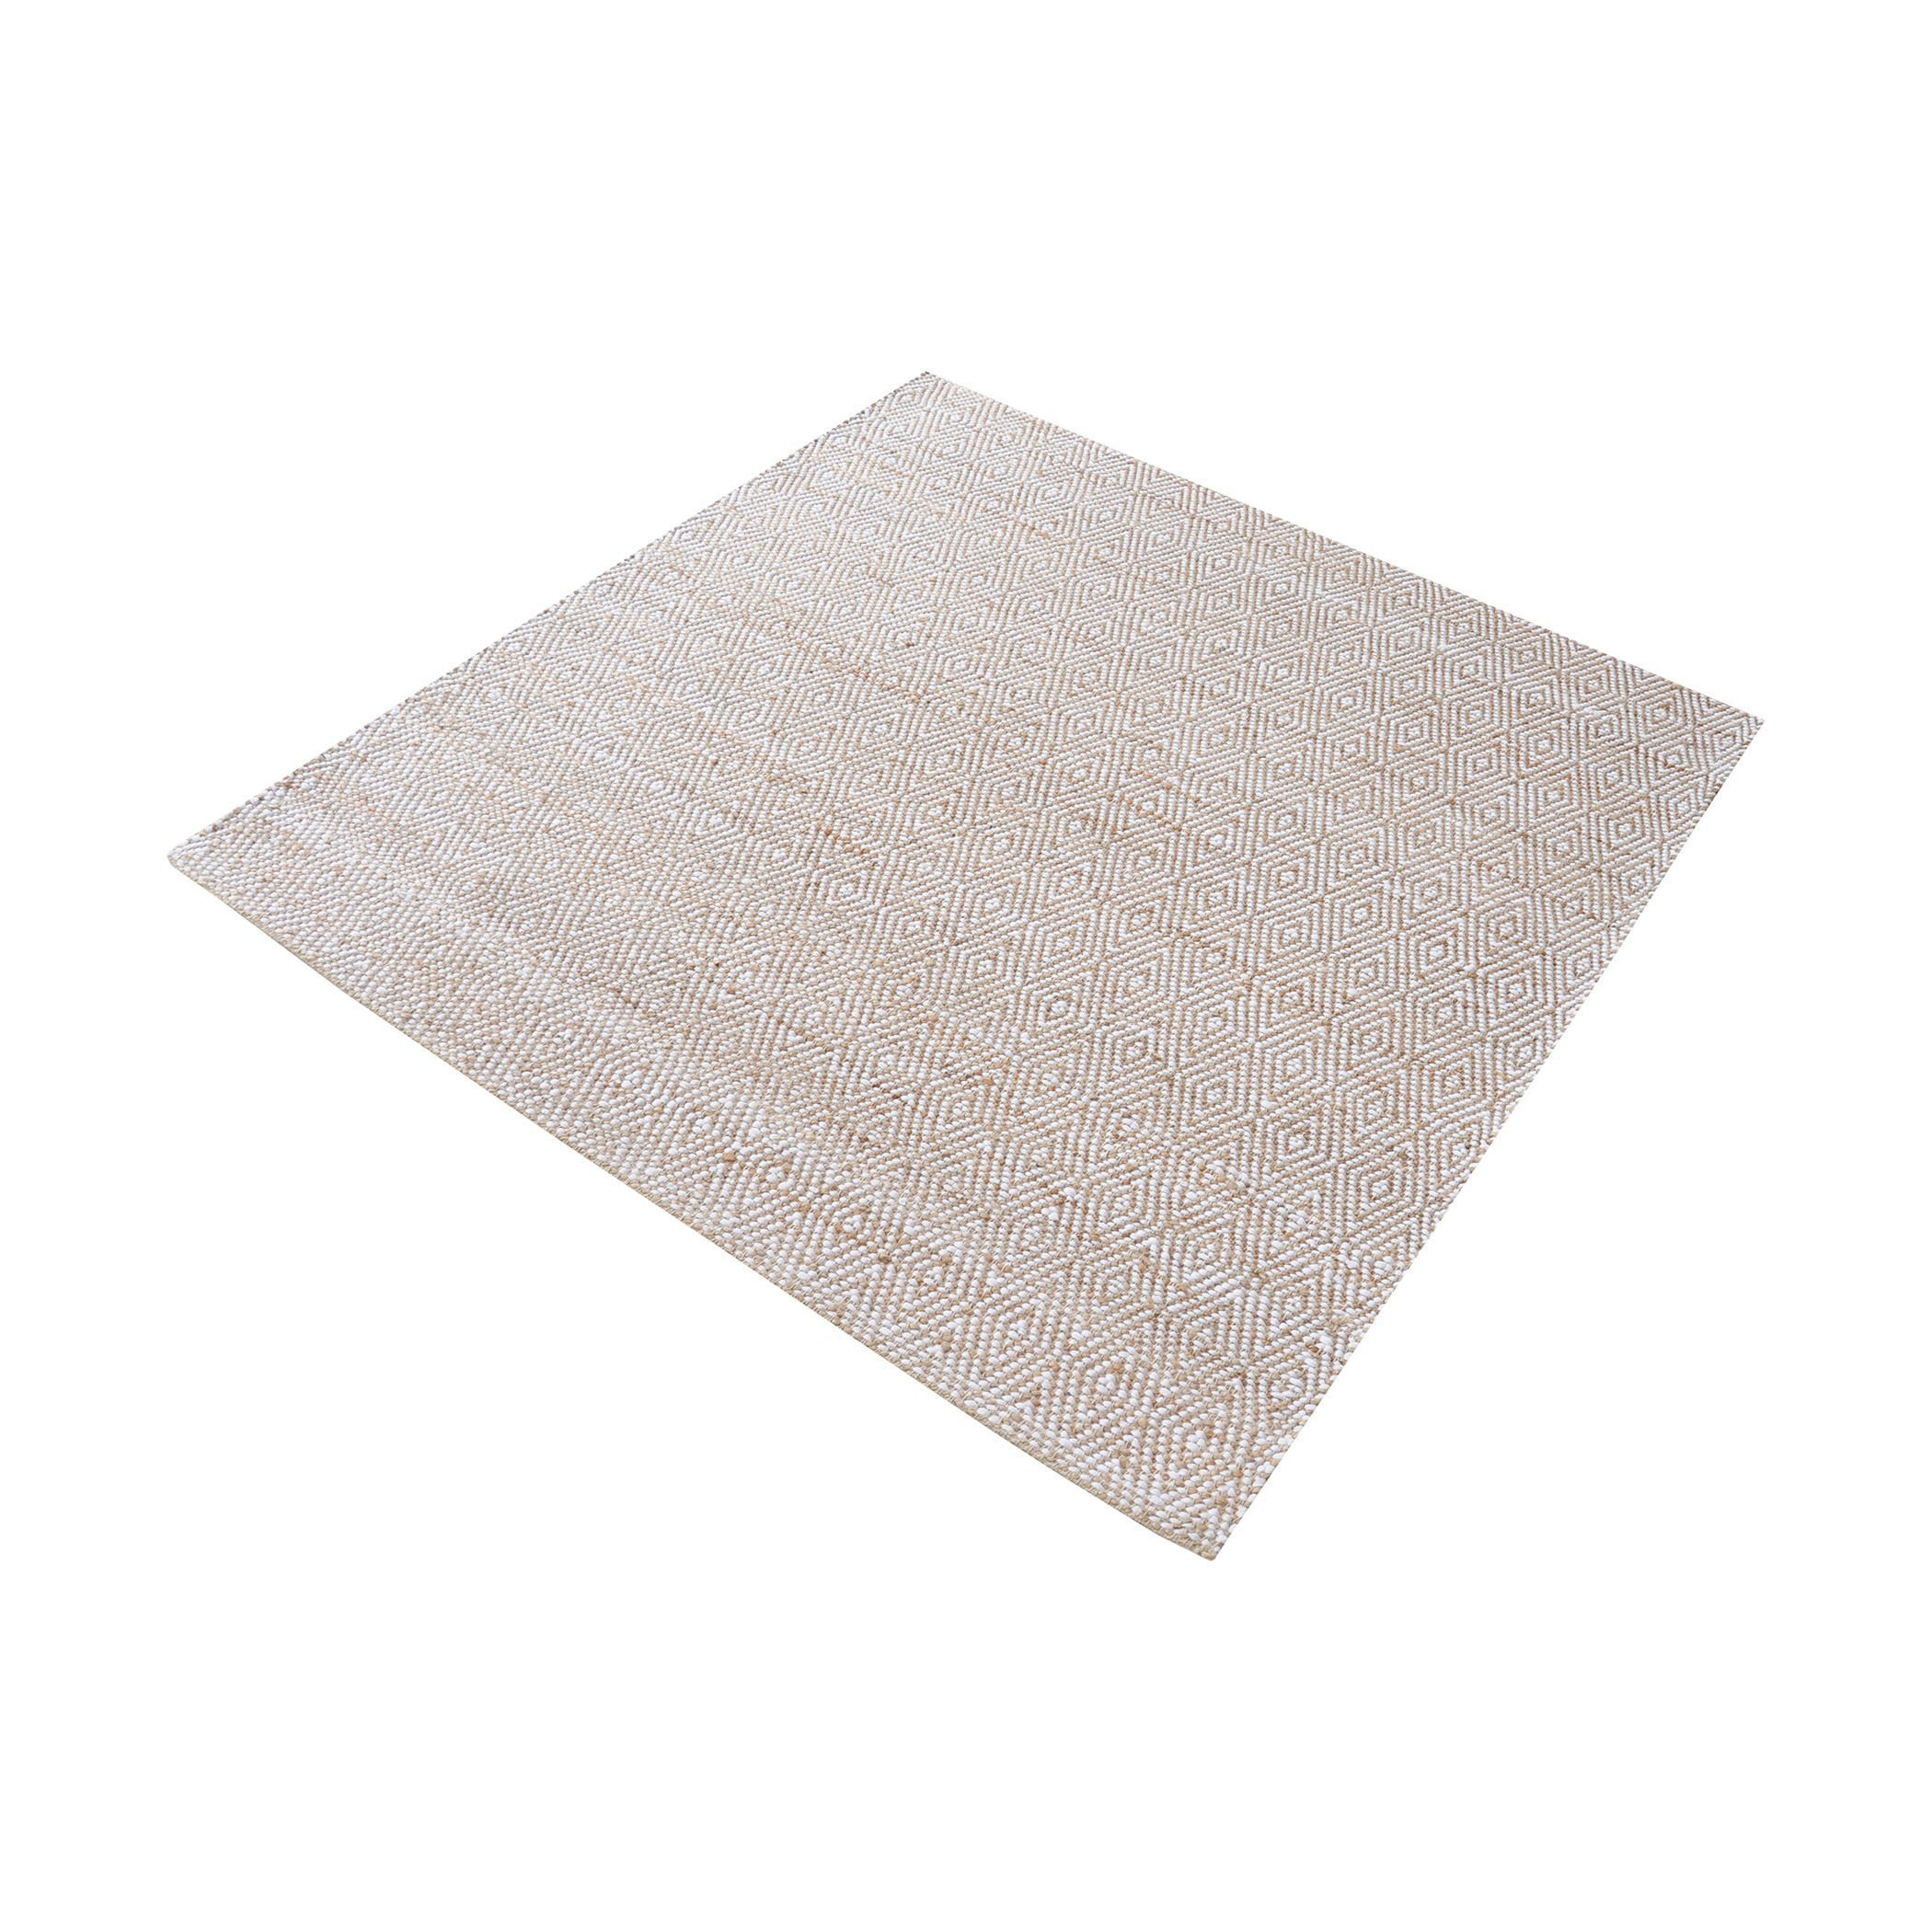 Elsie Handwoven Hemp And Cotton Rug 16 Inch Square Hand Weaving Beige Area Rugs Rugs